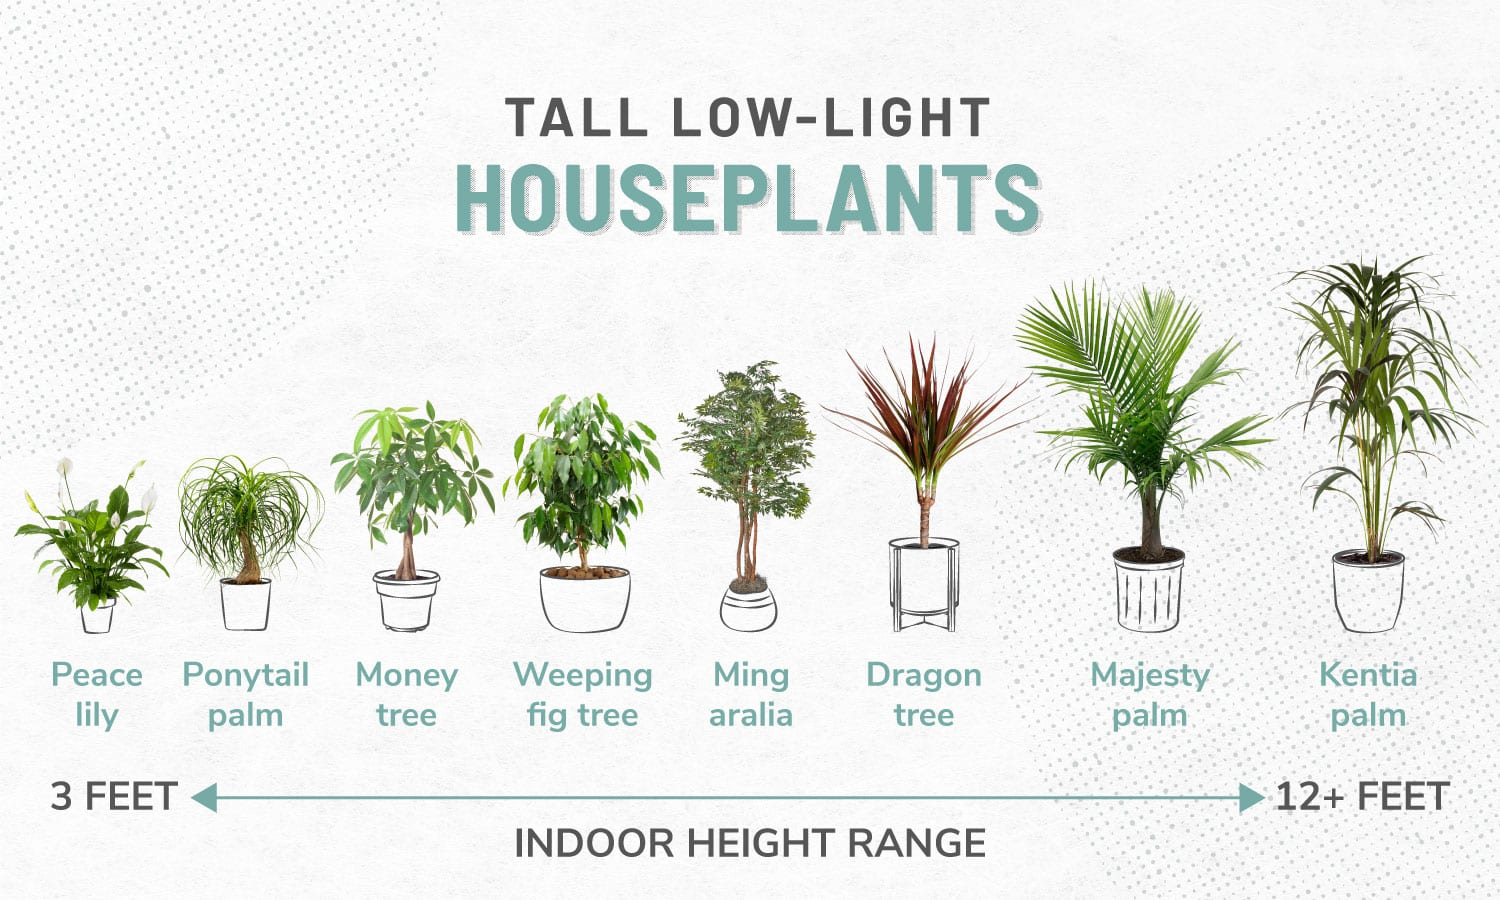 33 Low Light Houseplants To Bring Your Space To Life Apartmentguide Com